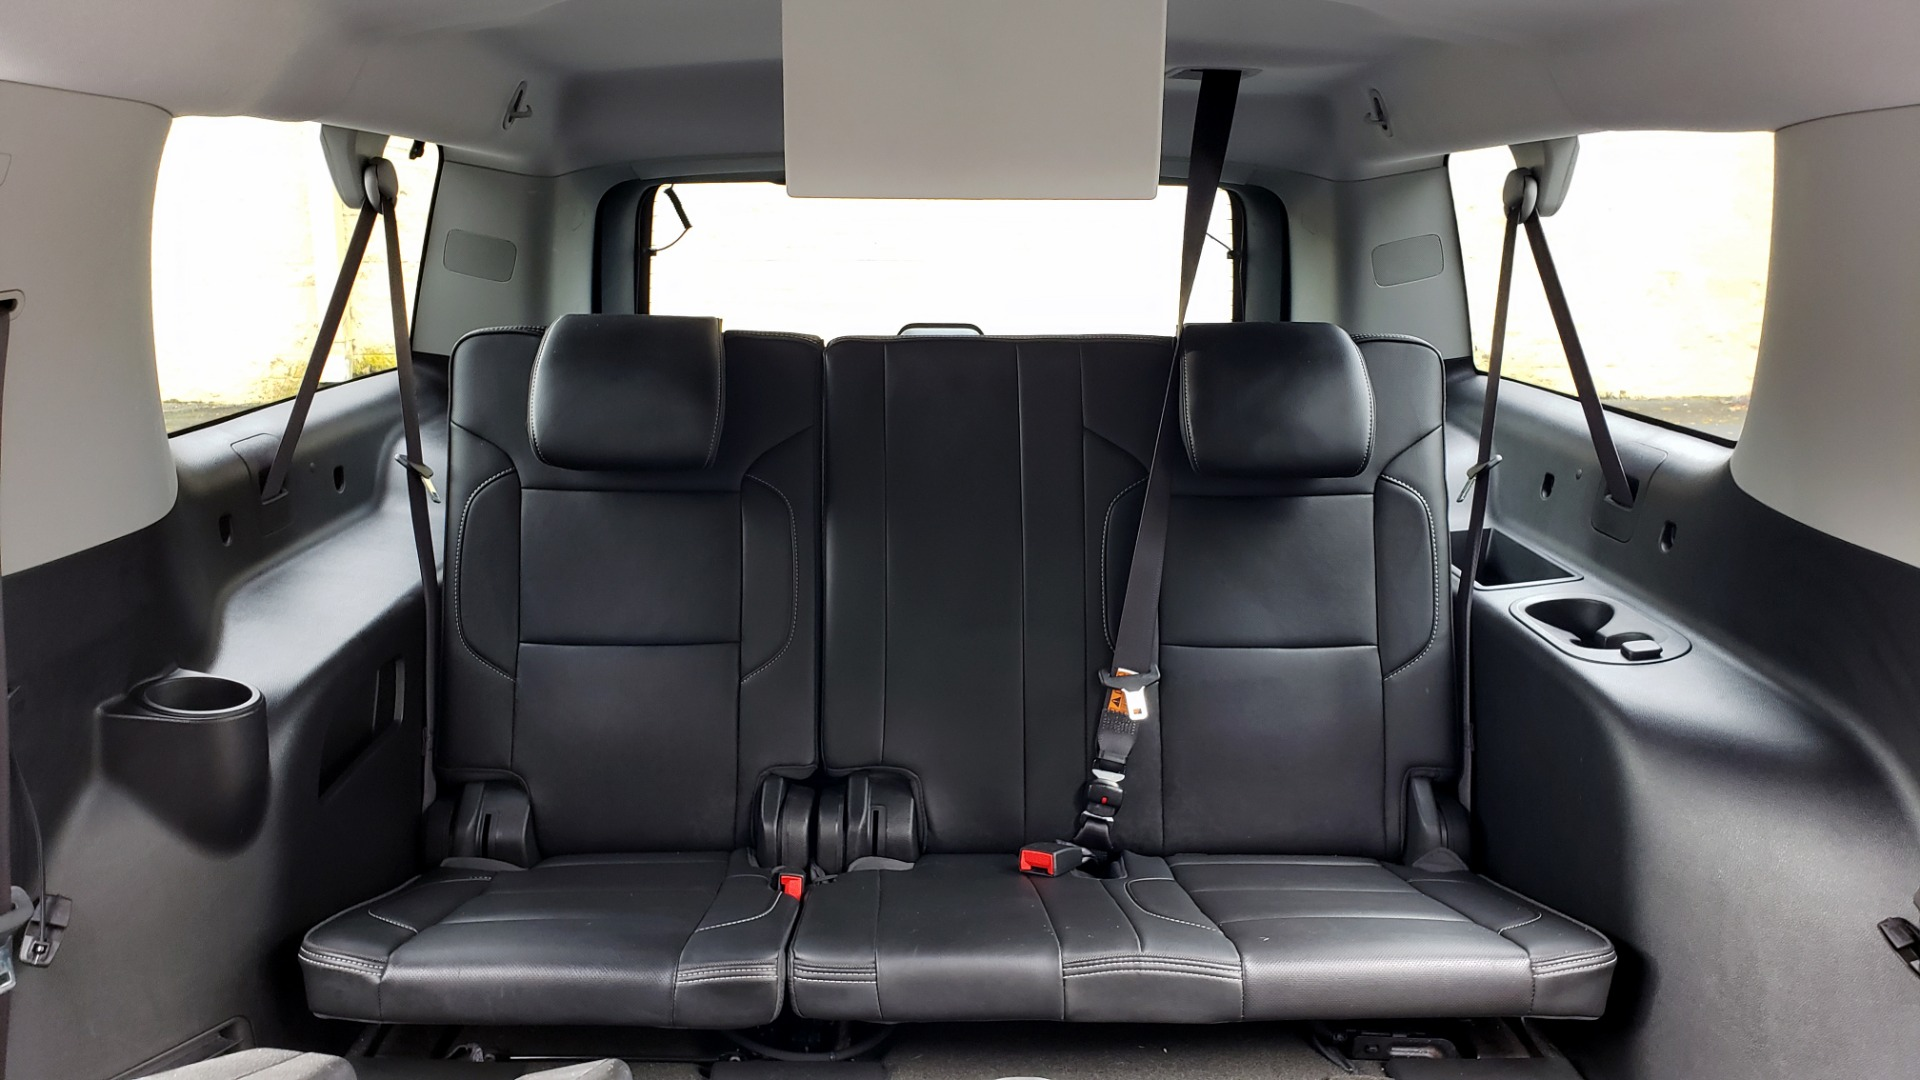 Used 2017 GMC YUKON XL DENALI 4WD / NAV / SUNROOF / ENT / 3-ROWS / BOSE / REARVIEW for sale Sold at Formula Imports in Charlotte NC 28227 73